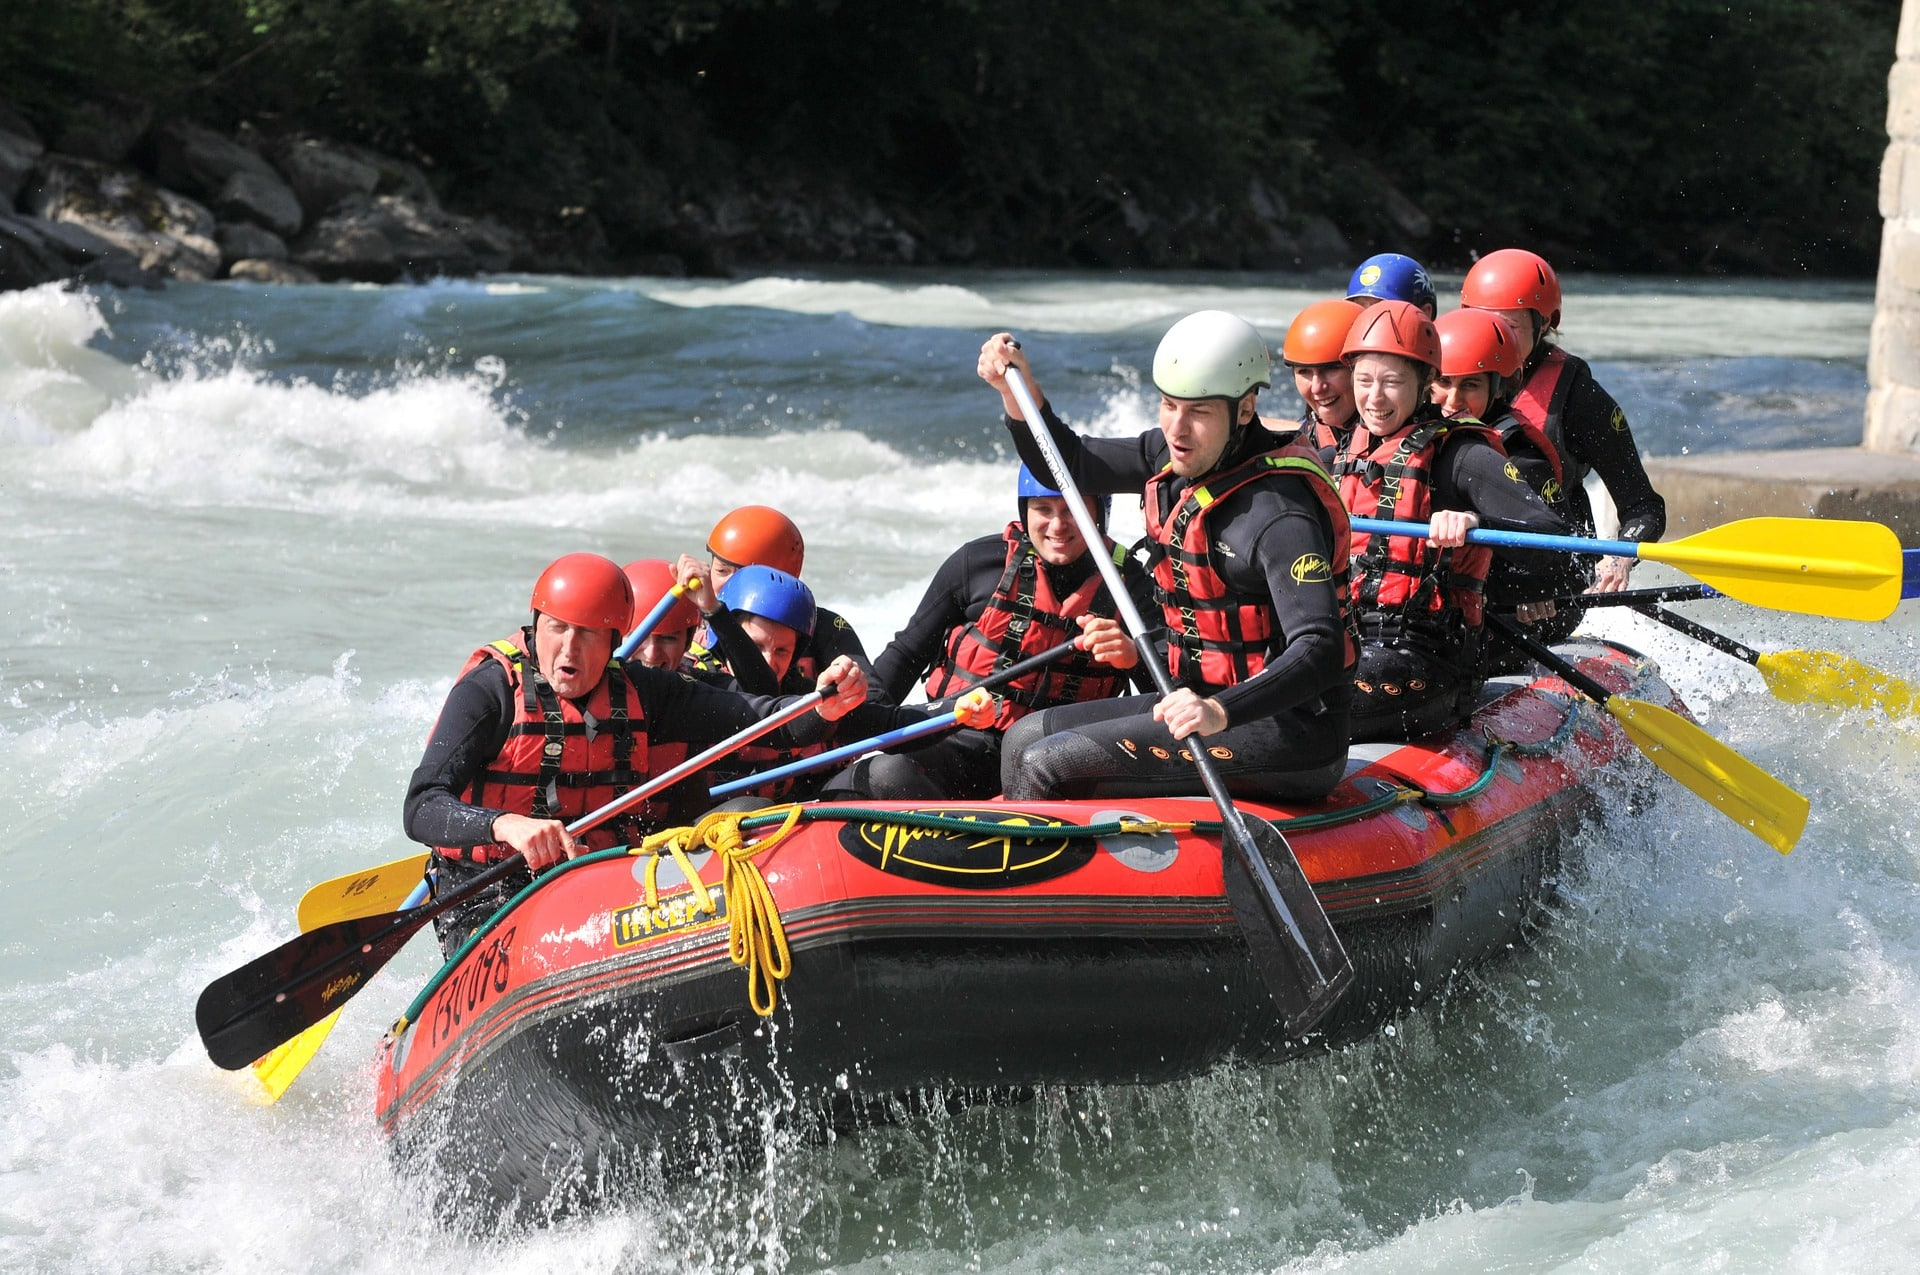 """For those looking for a bit more adventure enjoy an exciting and """"cool"""" experience on the Dora Baltea river, the confluence of various rivers and streams generated from the melting snow of Mont Blanc"""